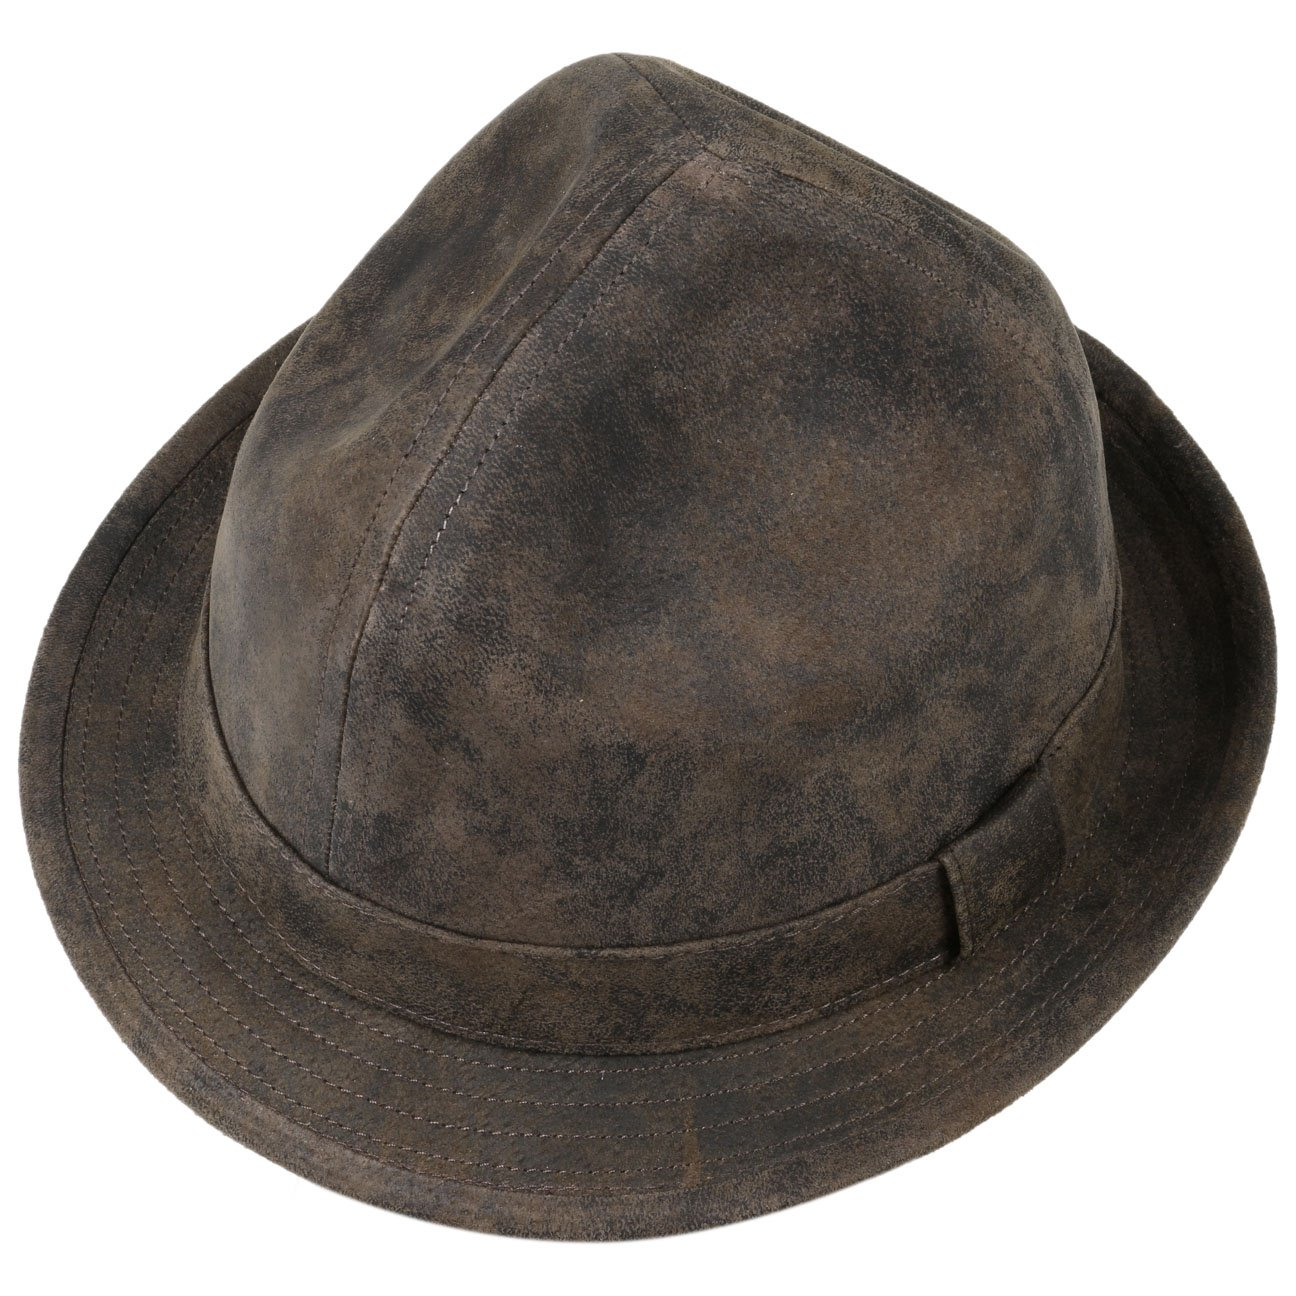 55ba3b3468ce0 Lierys Dreispitz Leather Hat folkloristic  Amazon.co.uk  Clothing